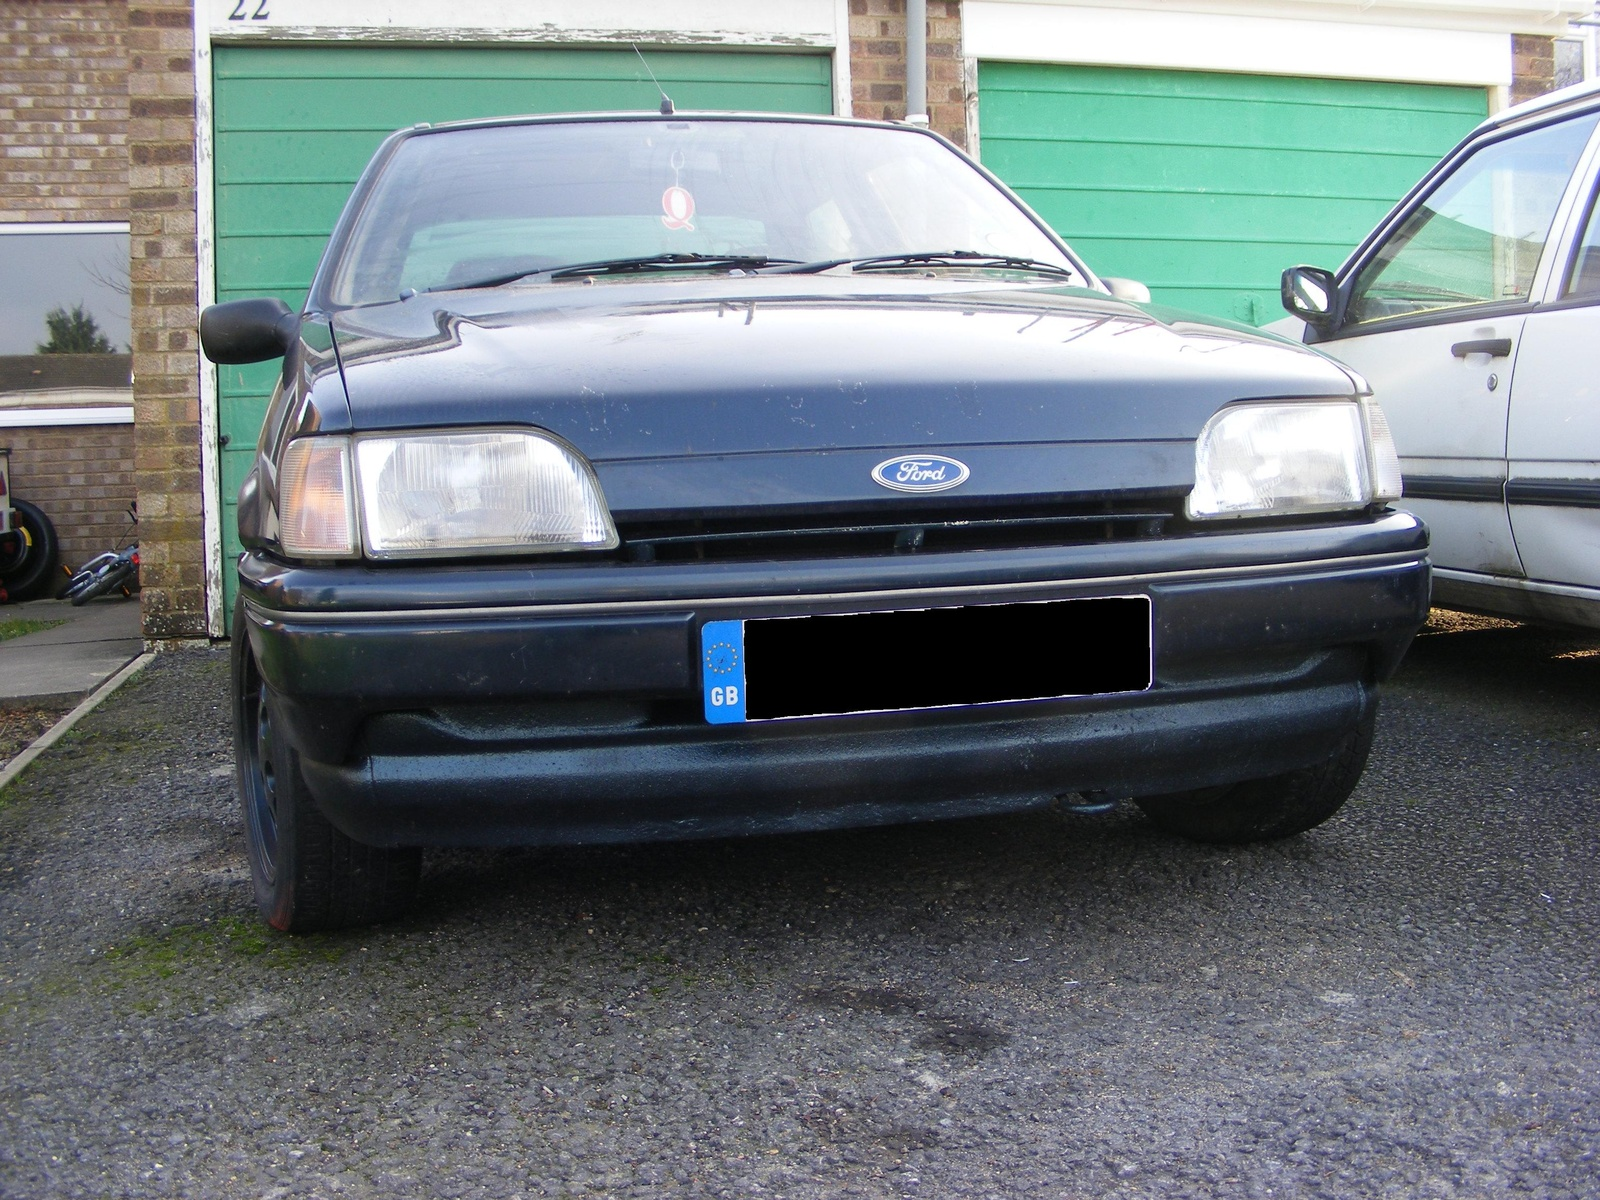 Ford Fiesta 1994 Tuning Pictures Picture Pictures to pin on Pinterest